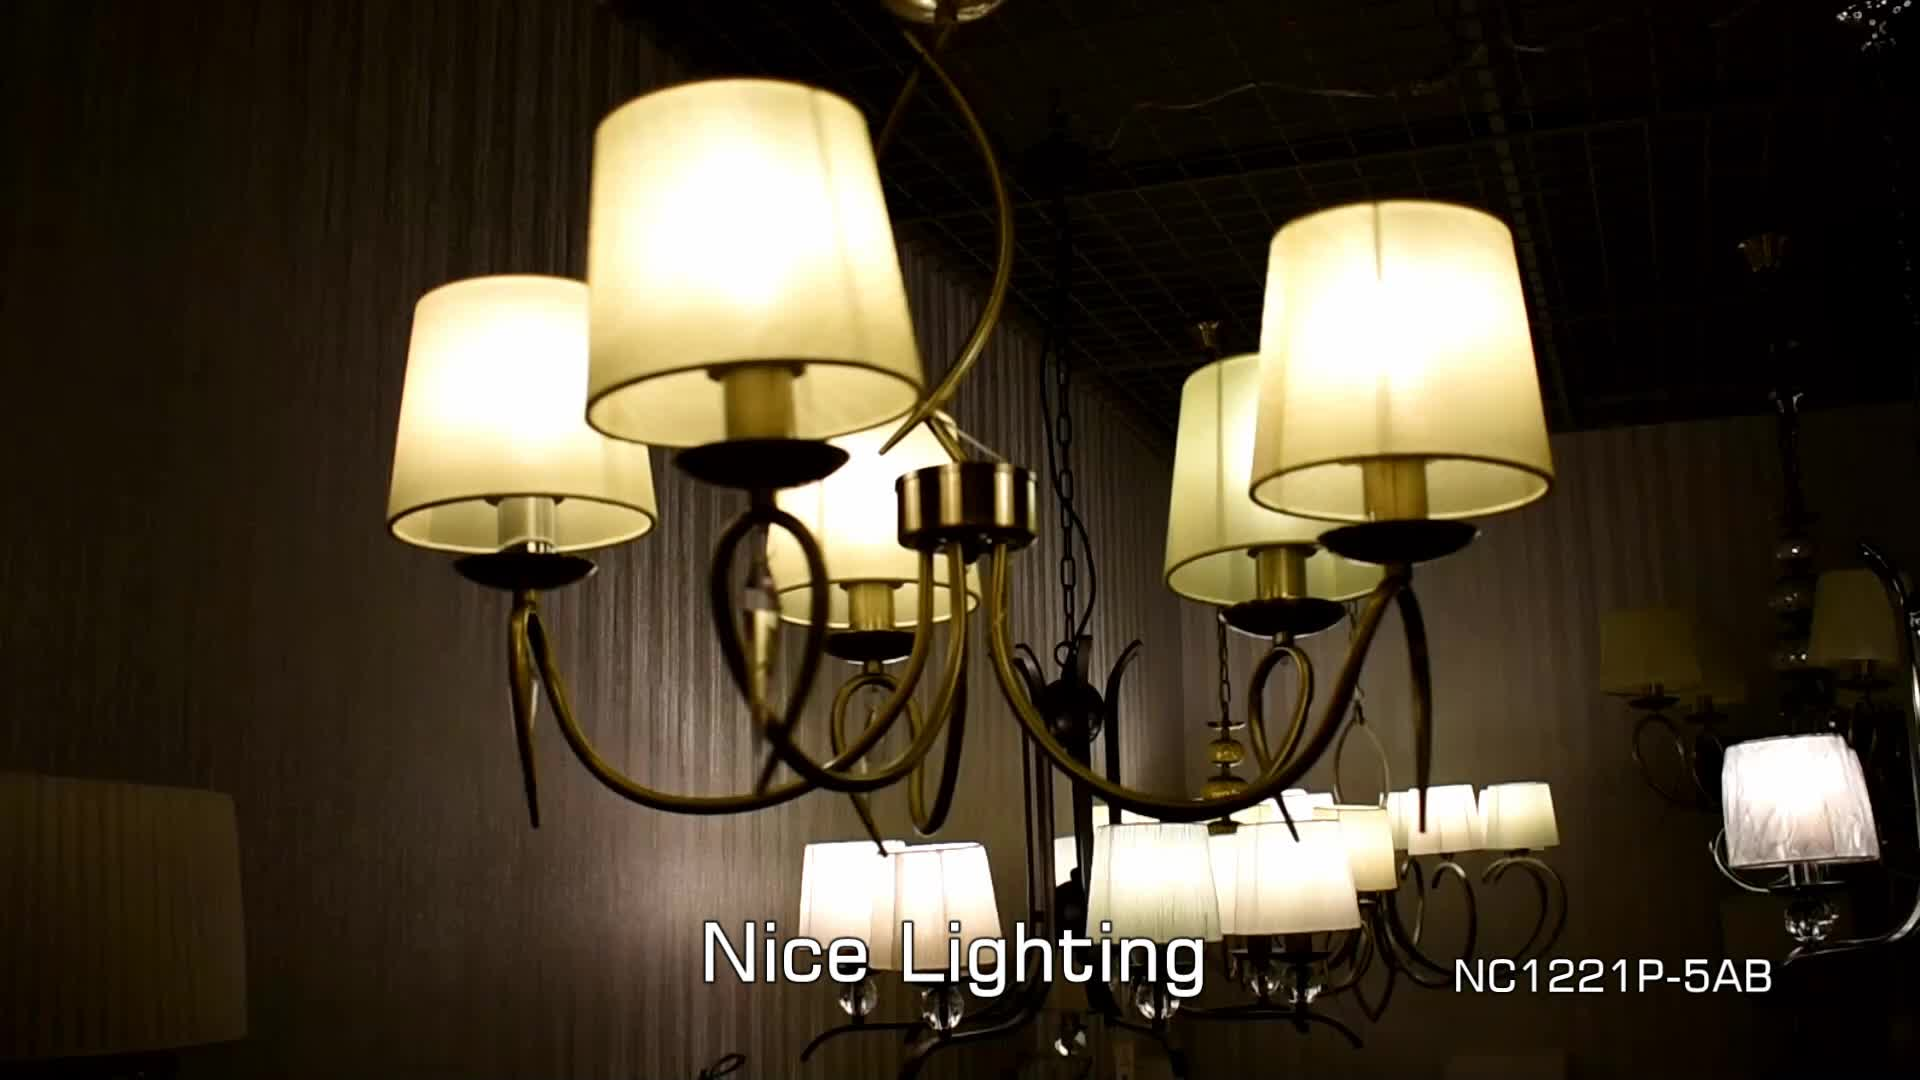 Nice Lighting 5 Light White Fabric Shade Chrome Color Dining Room Large Hotel Chandelier